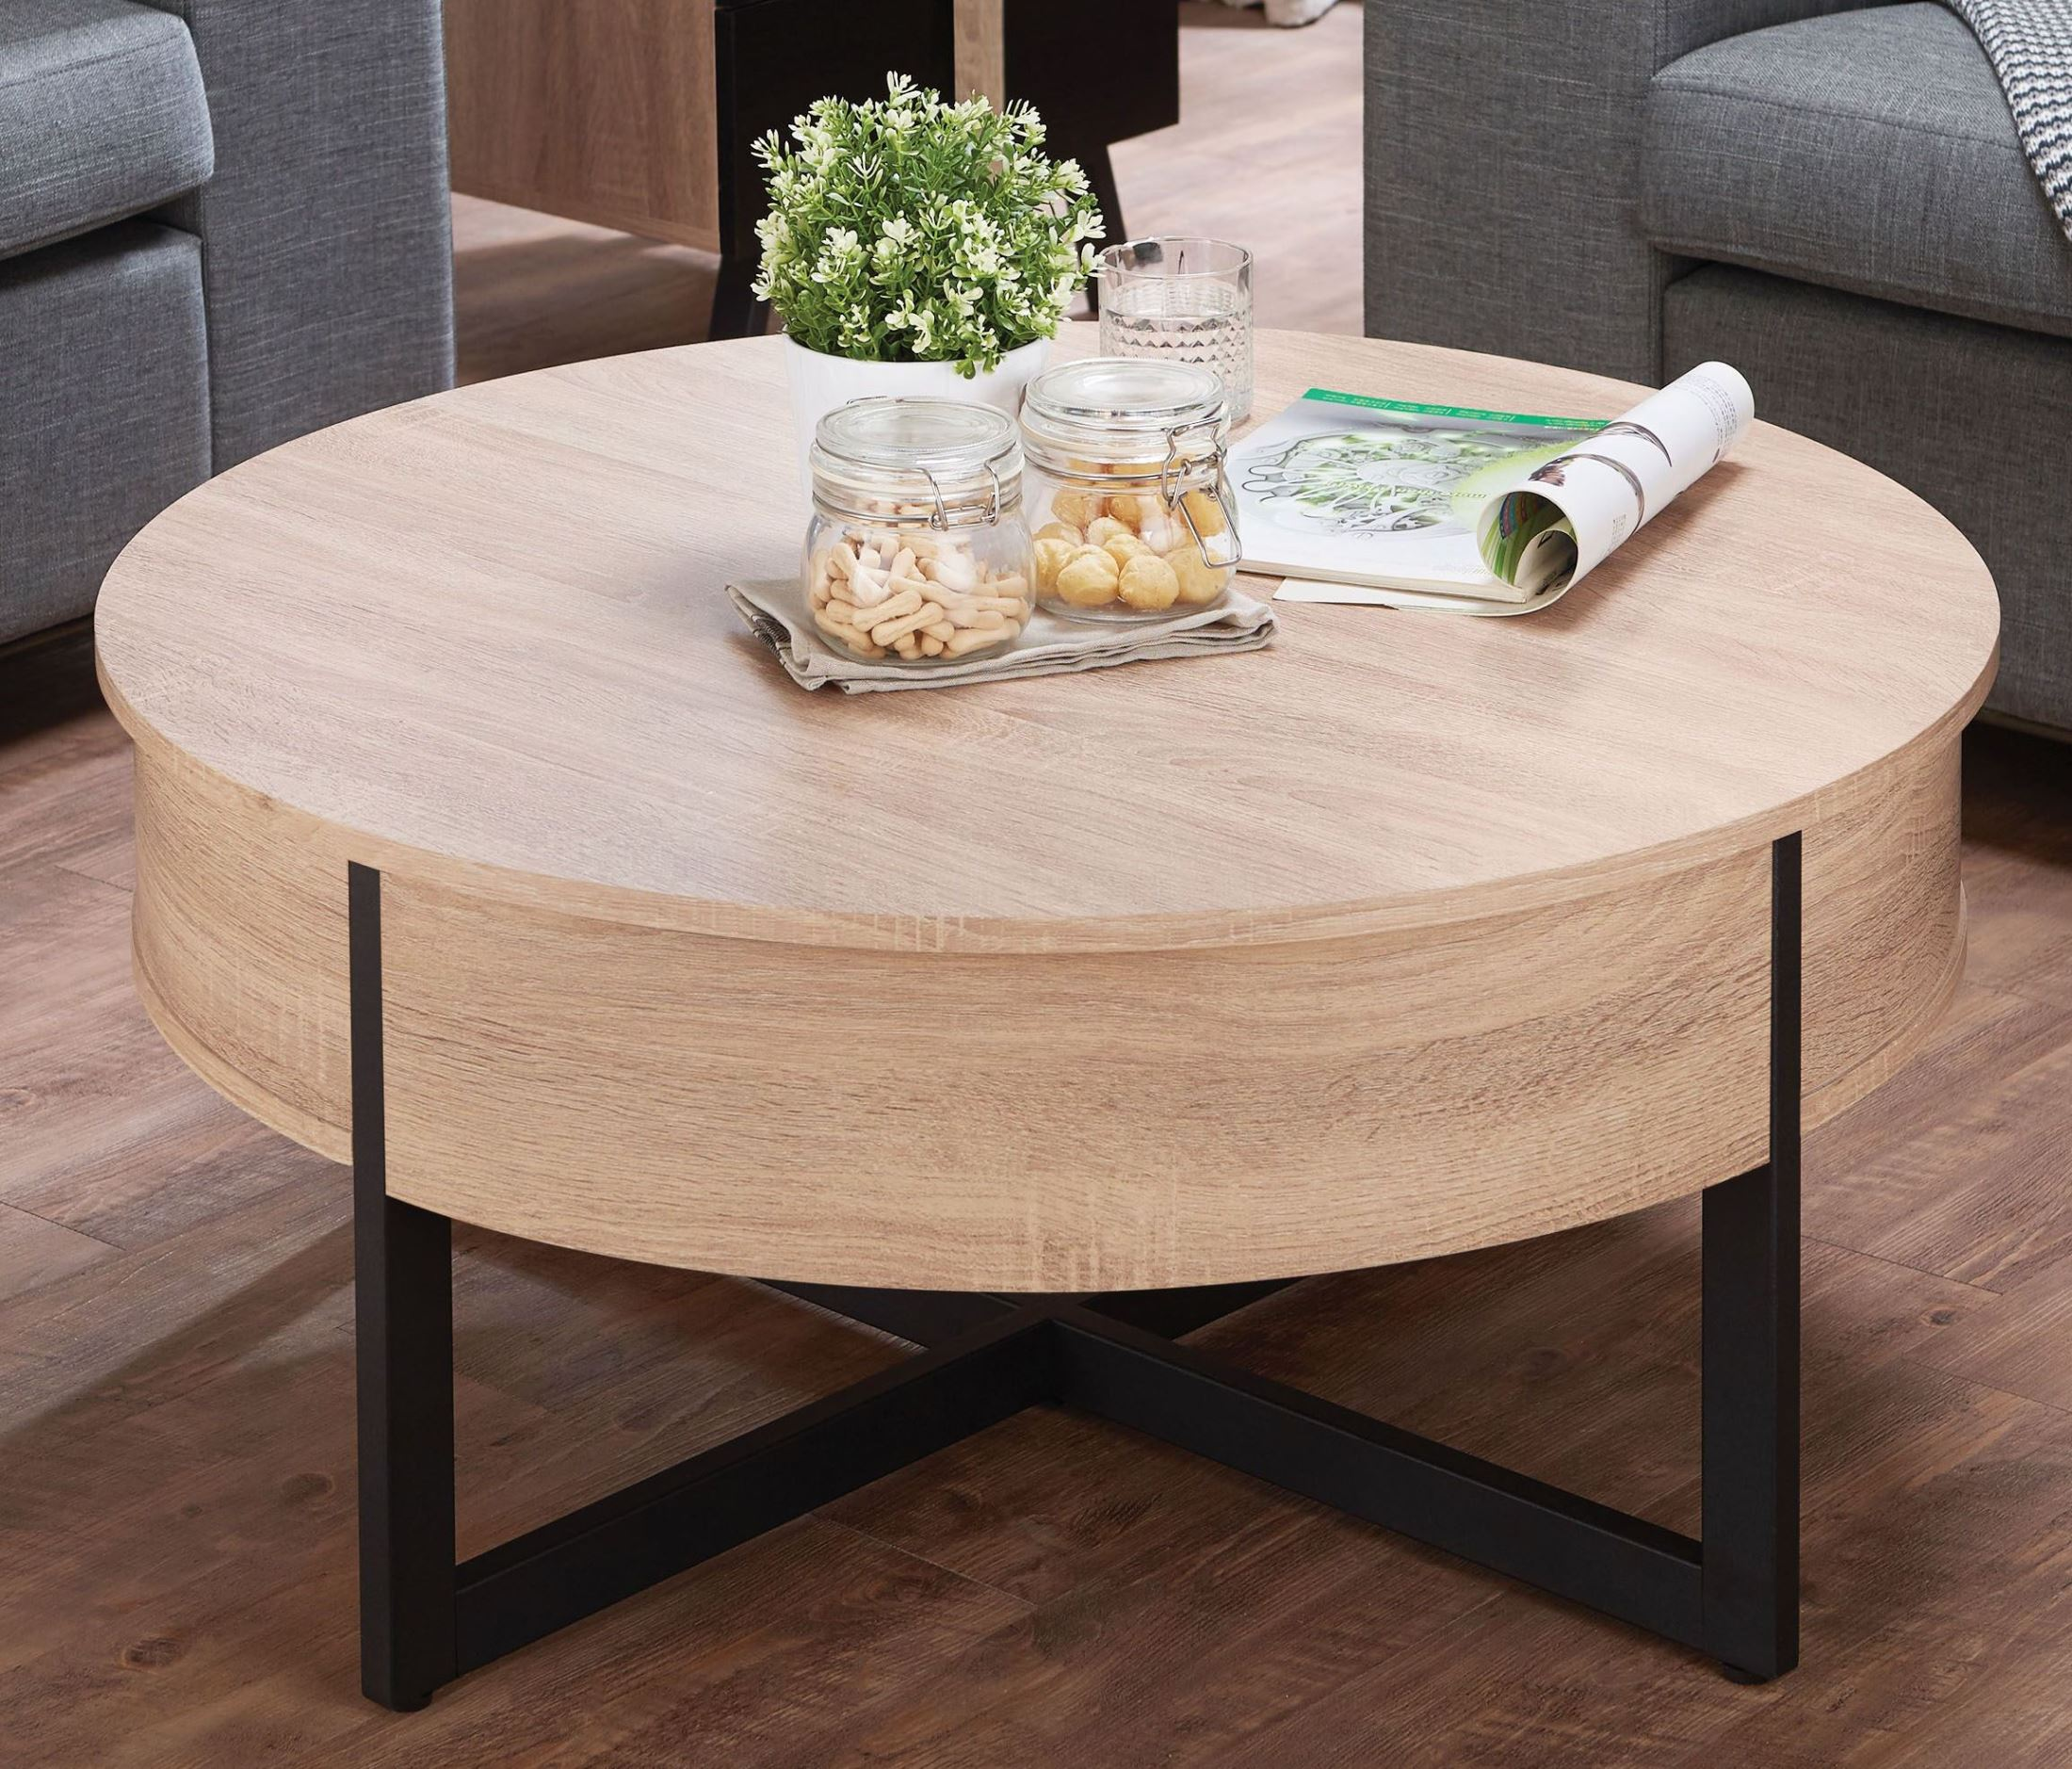 Rustic Coffee Table Black: ACME Nuria Rustic Natural And Black Coffee Table